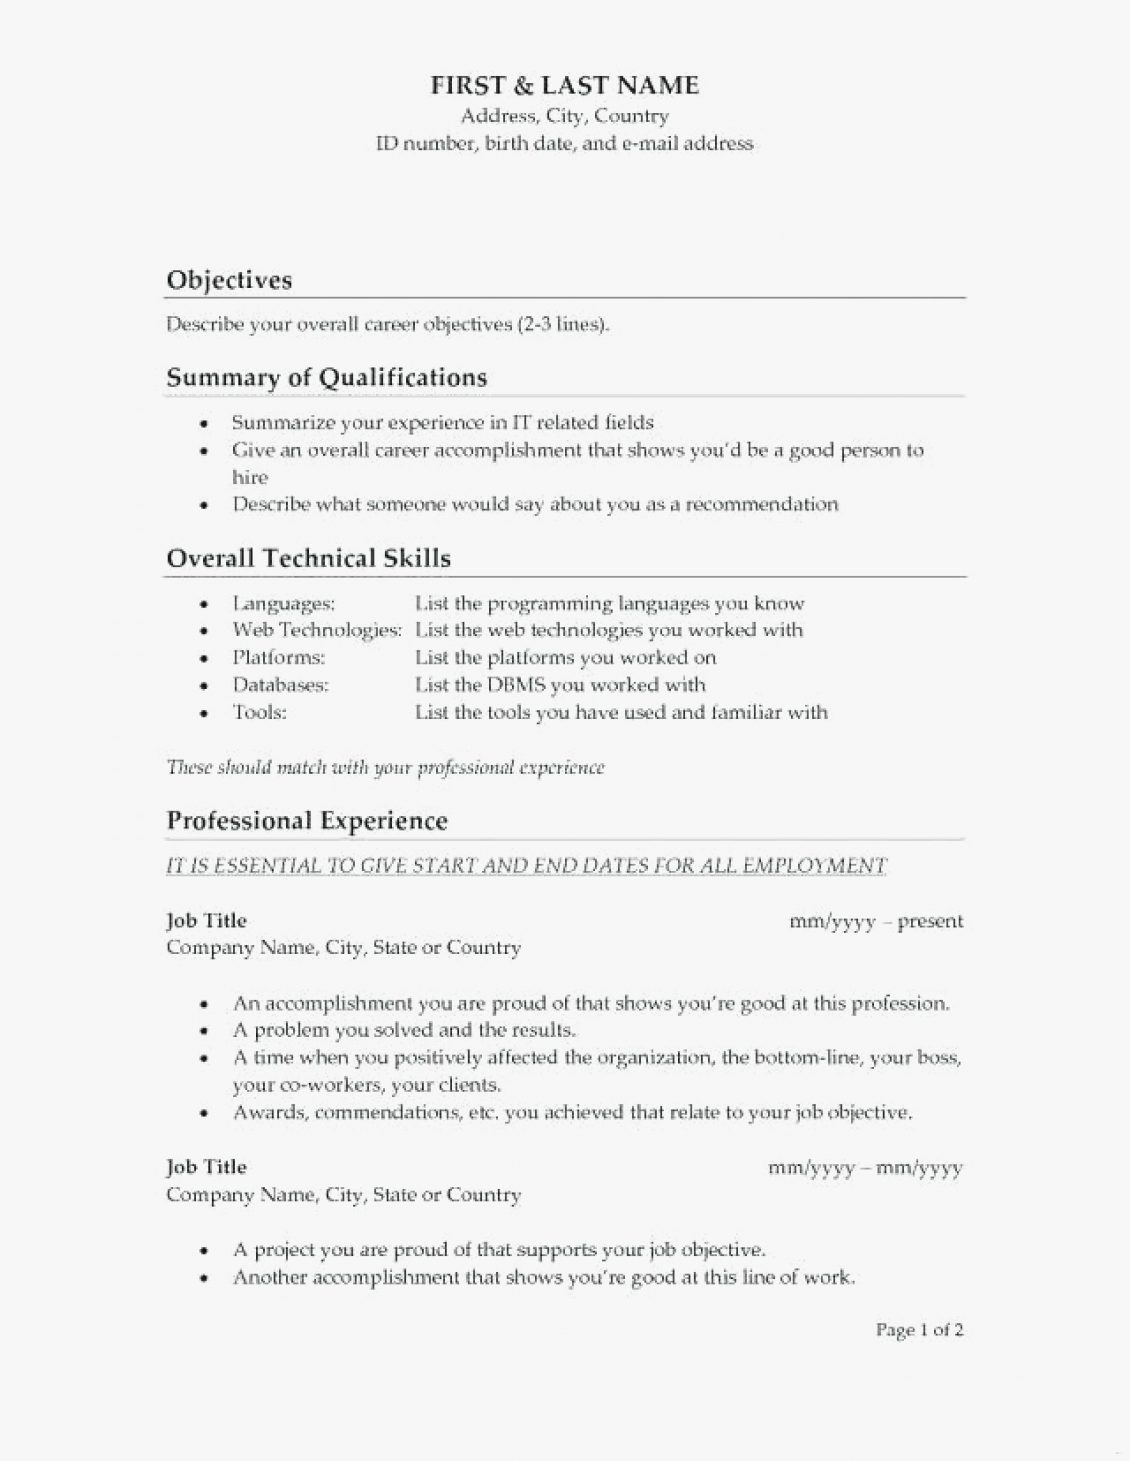 Good Objective For Resume Whats A Good Objective Put On Resume For Lovely General Objectives Resumes Accounting Samples Of Complete Consequently Statements 1130x1461 good objective for resume wikiresume.com